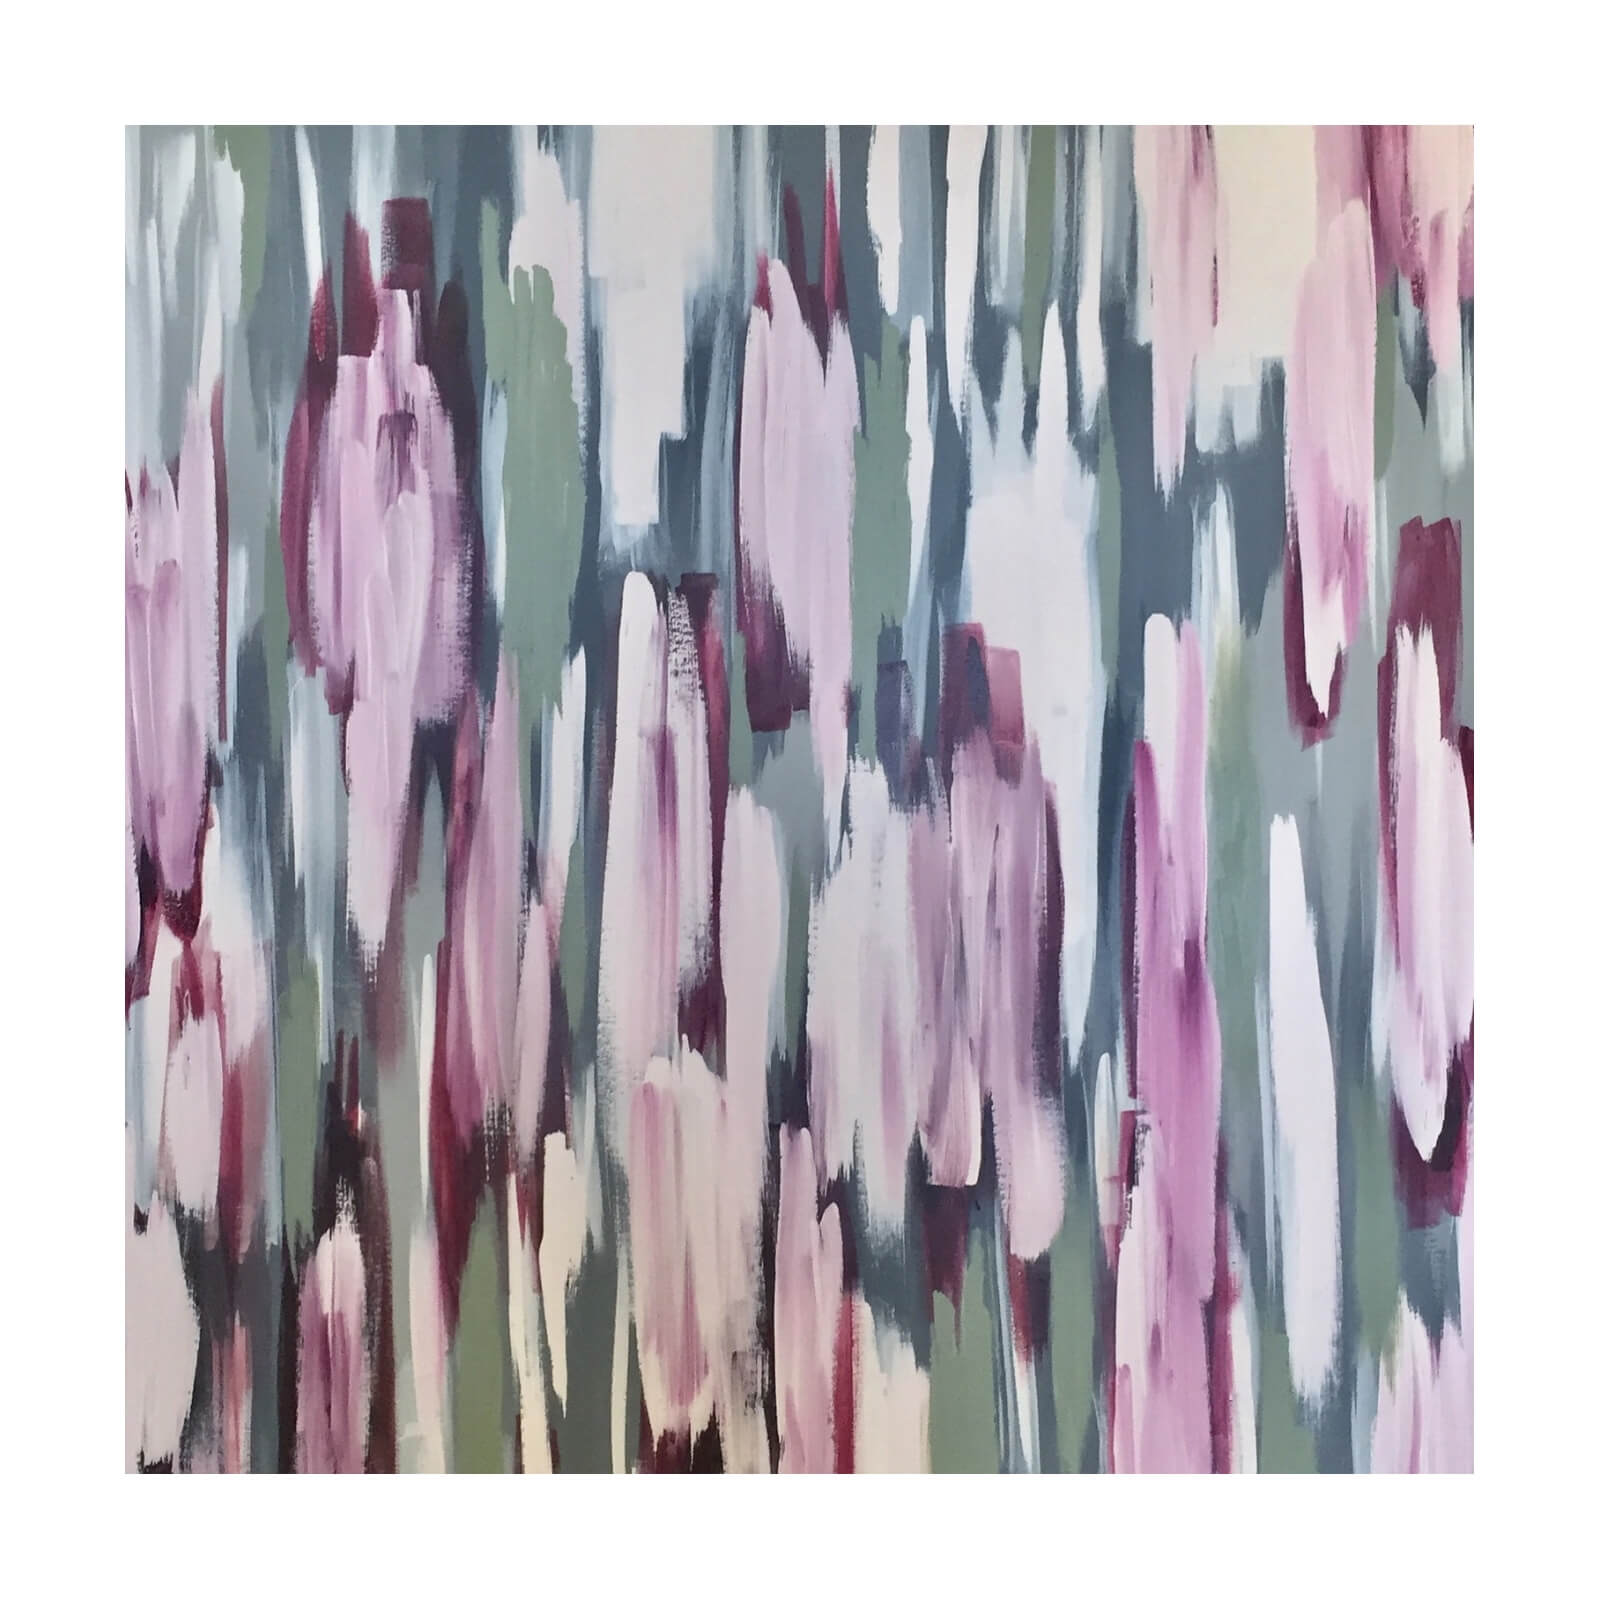 Two Design Lovers Jak & Co Rose Garden artwork acrylic on canvas